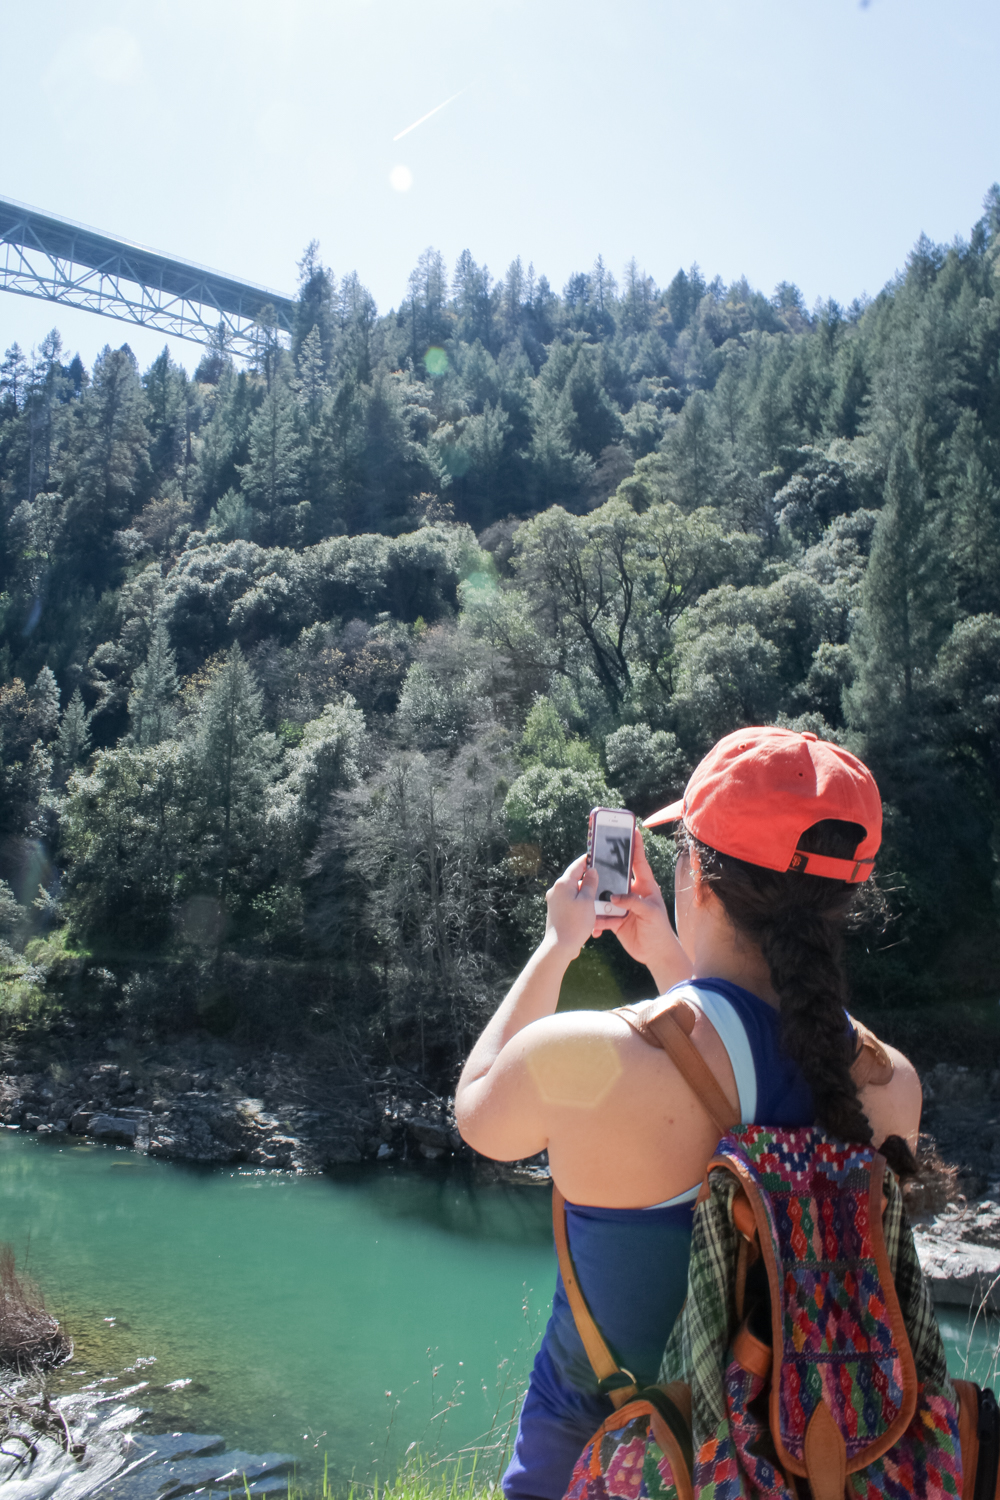 Hiking at Lake Clementine dam in Auburn, CA | easy northern california hikes | American River Confluence | tintedgreen